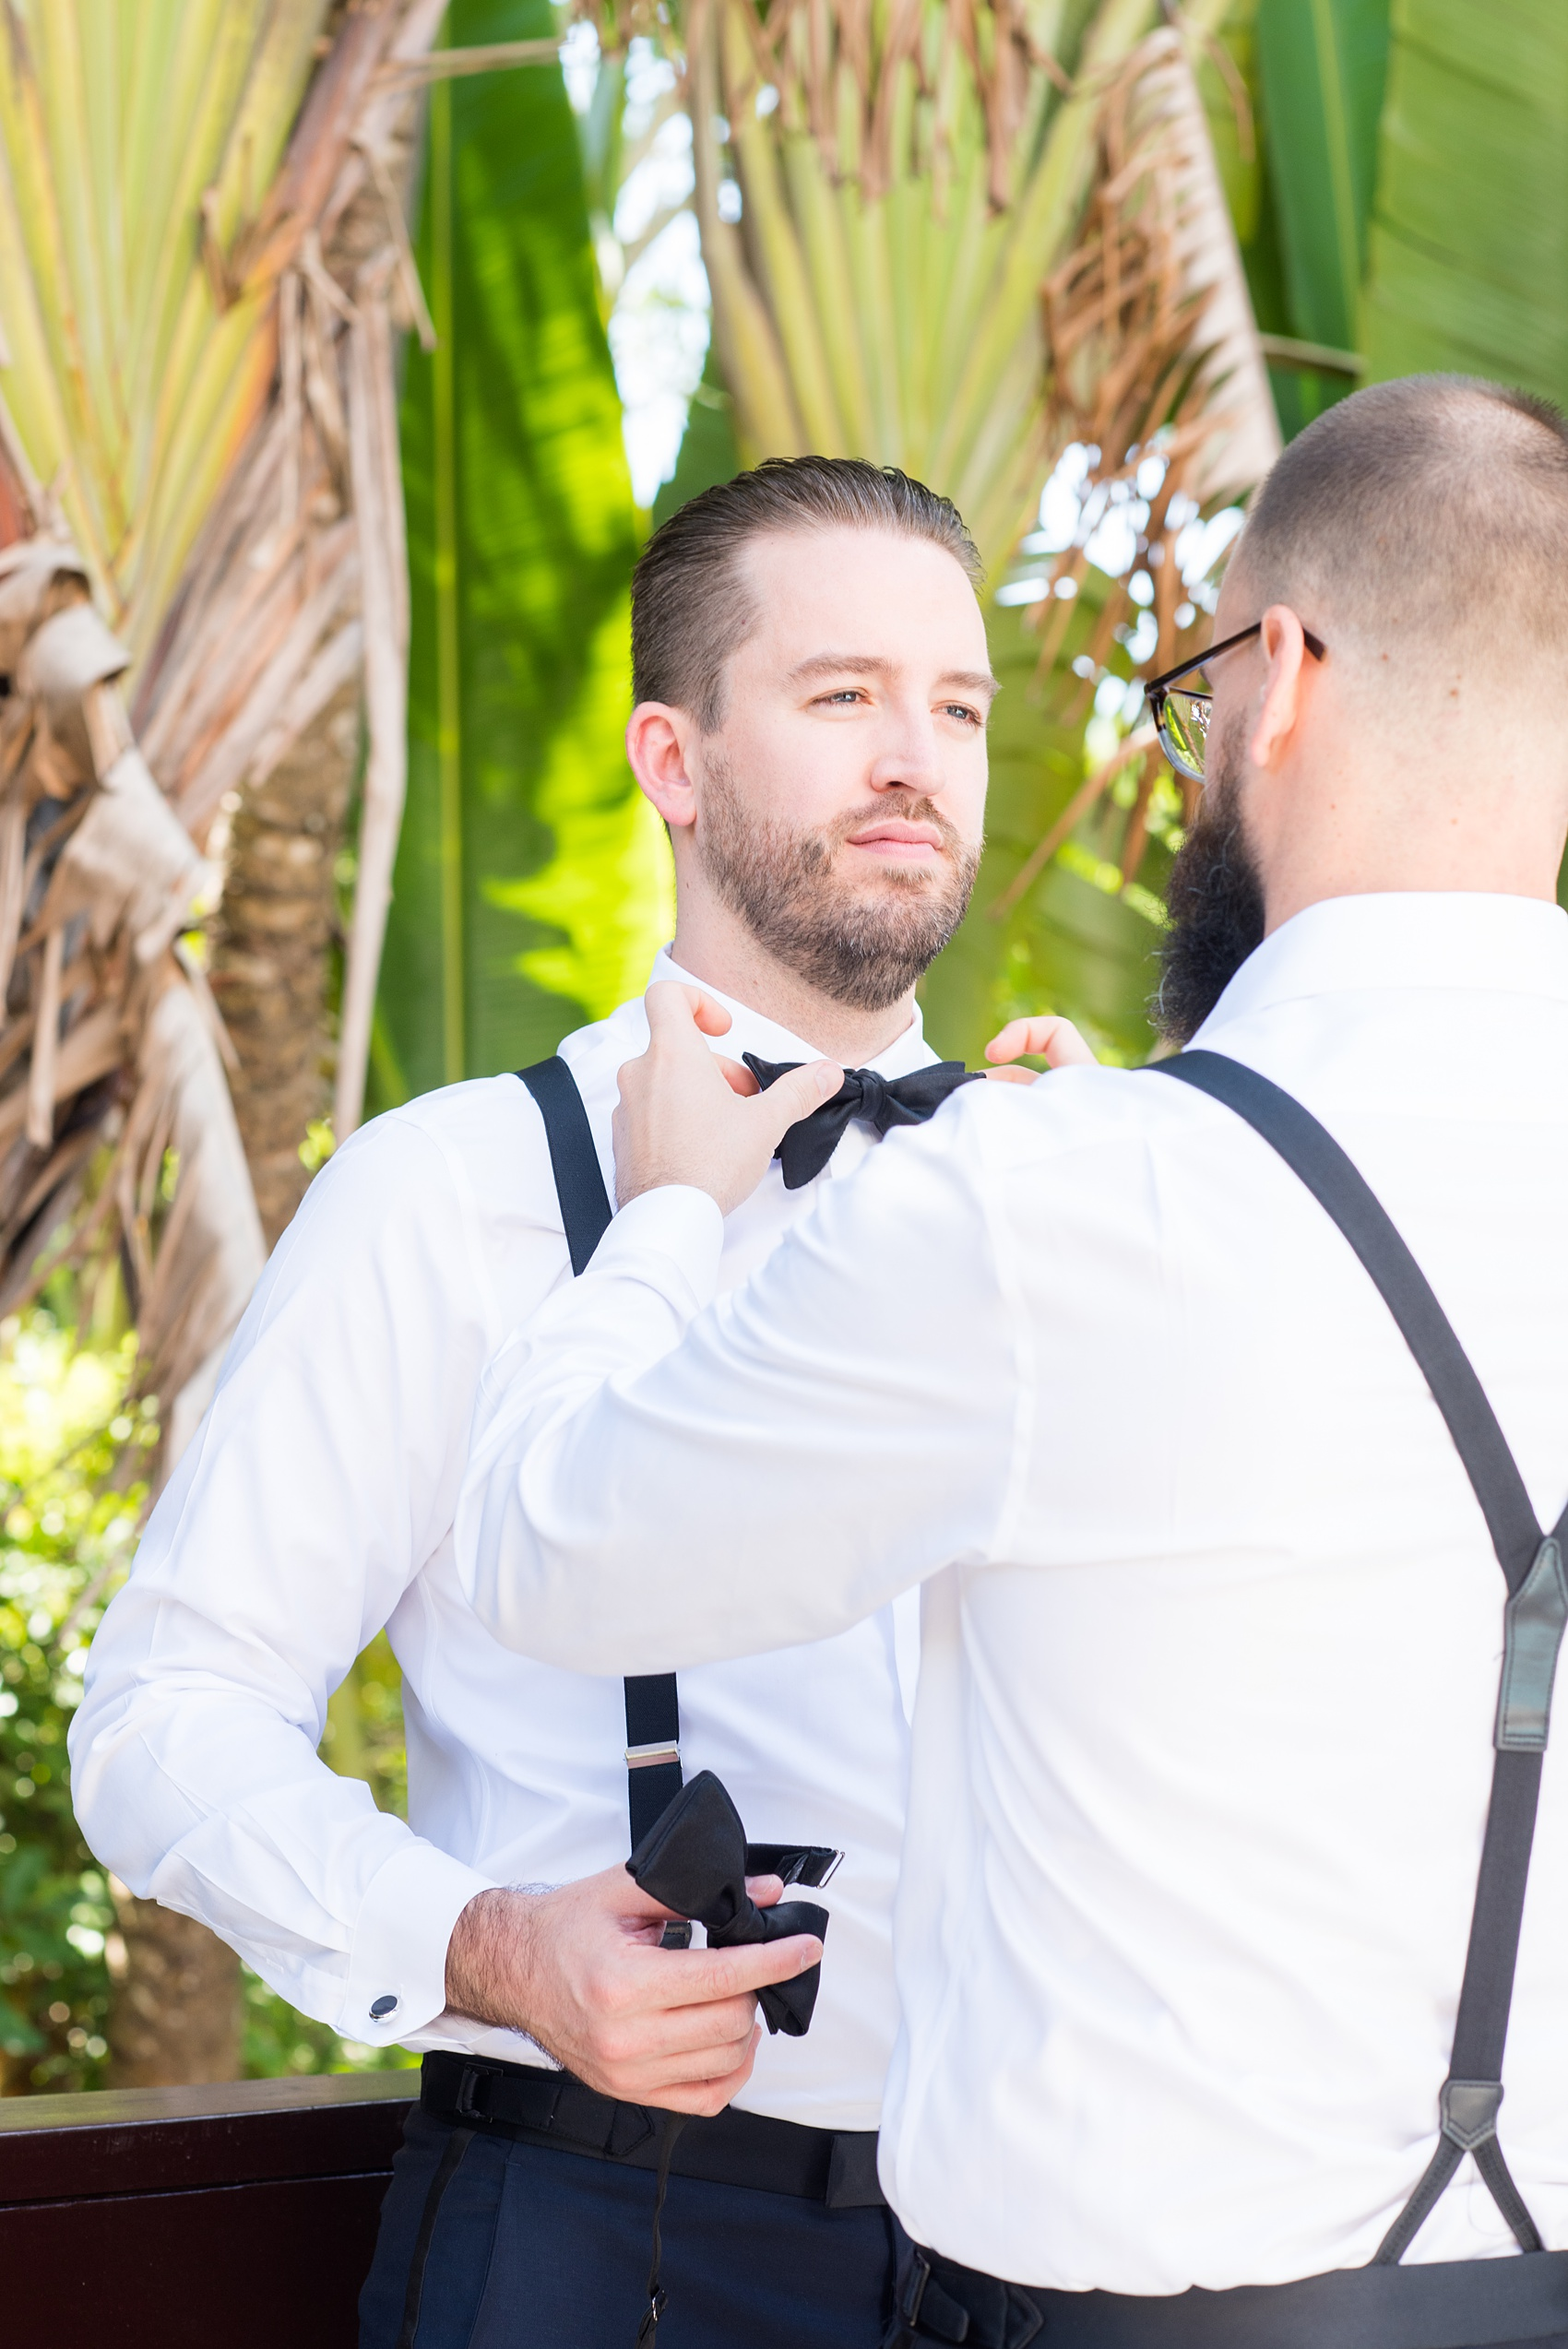 La Romana is an hour from Punta Cana and home to an incredible, all inclusive resort with beautiful Minitas beach and mountain view in the Dominican Republic. It's a great location for a destination wedding, which these pictures of the groomsmen getting ready with the groom, by Mikkel Paige Photography, prove! Click through for more Casa de Campo wedding photography and ideas! Planning by @theeventeur. #GettingReady #destinationwedding #mikkelpaige #groomsmen #groom